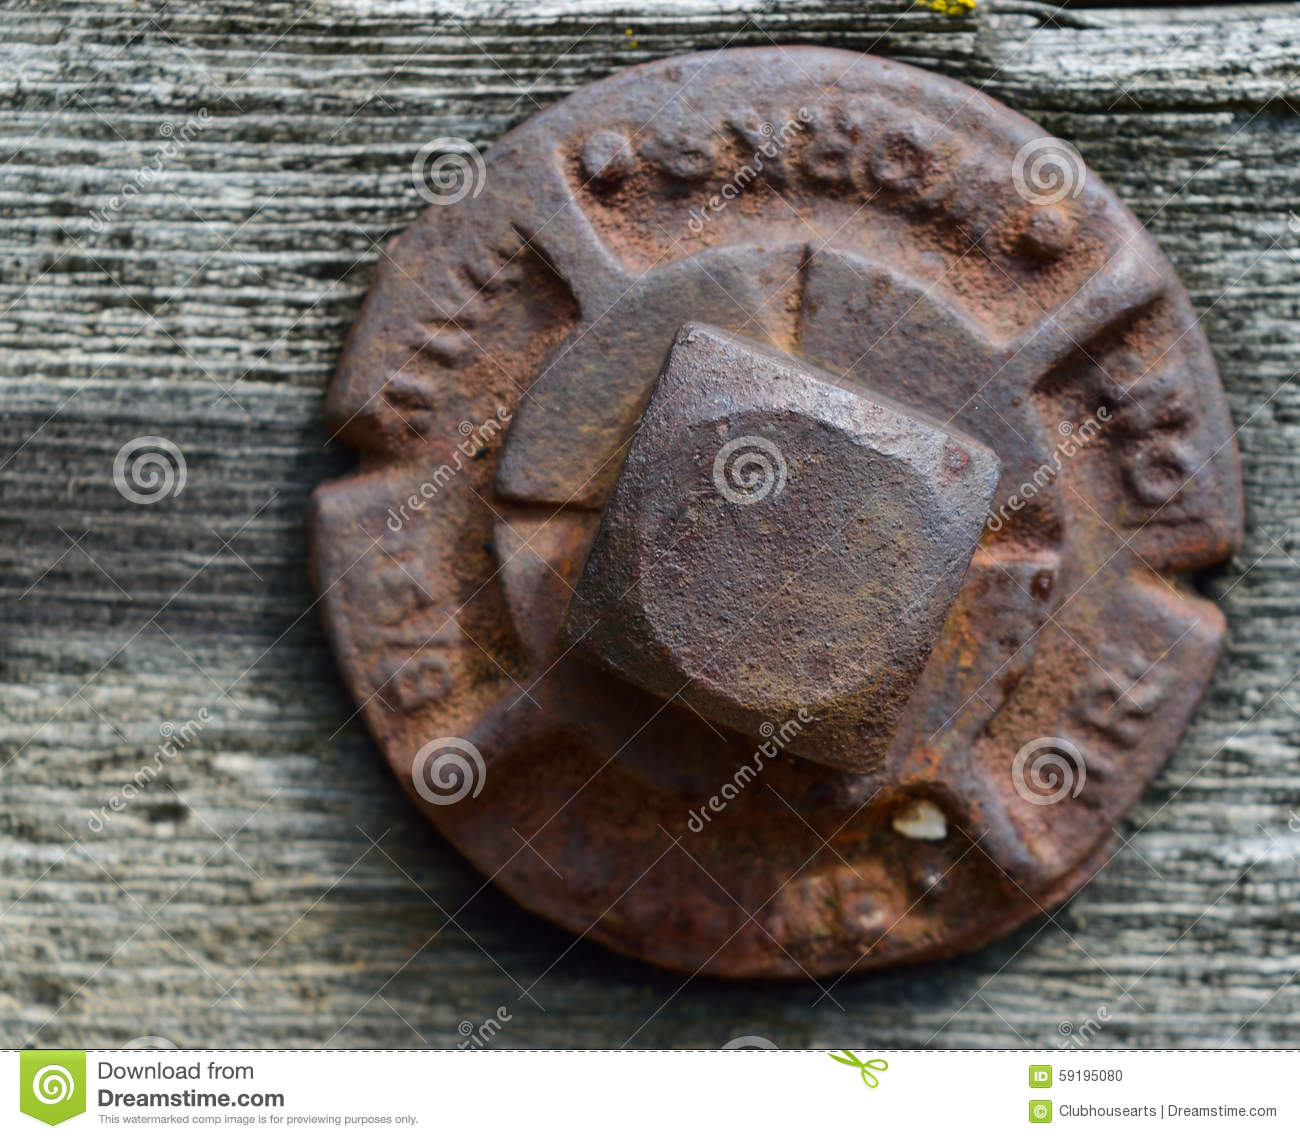 Bolt And Washer >> Square Head Iron Bridge Bolt Stock Photo - Image: 59195080